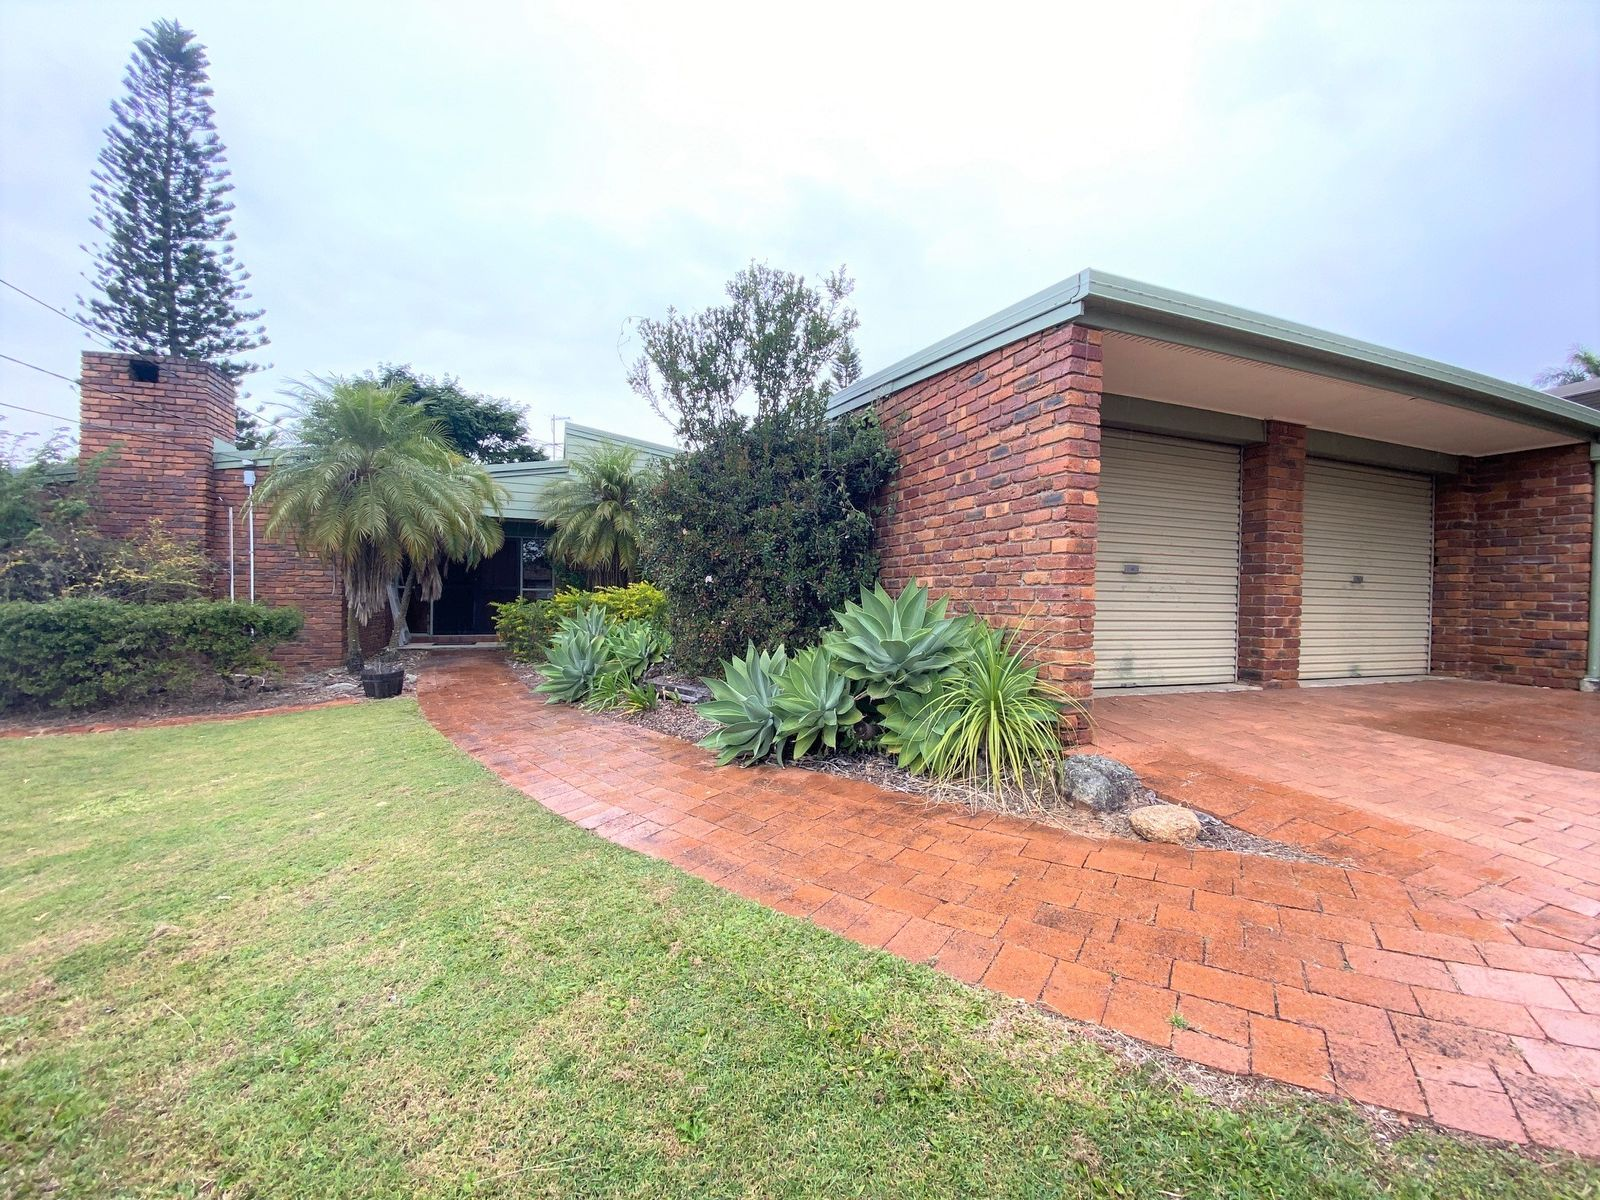 17 Marjorie Street, Rochedale South, QLD 4123